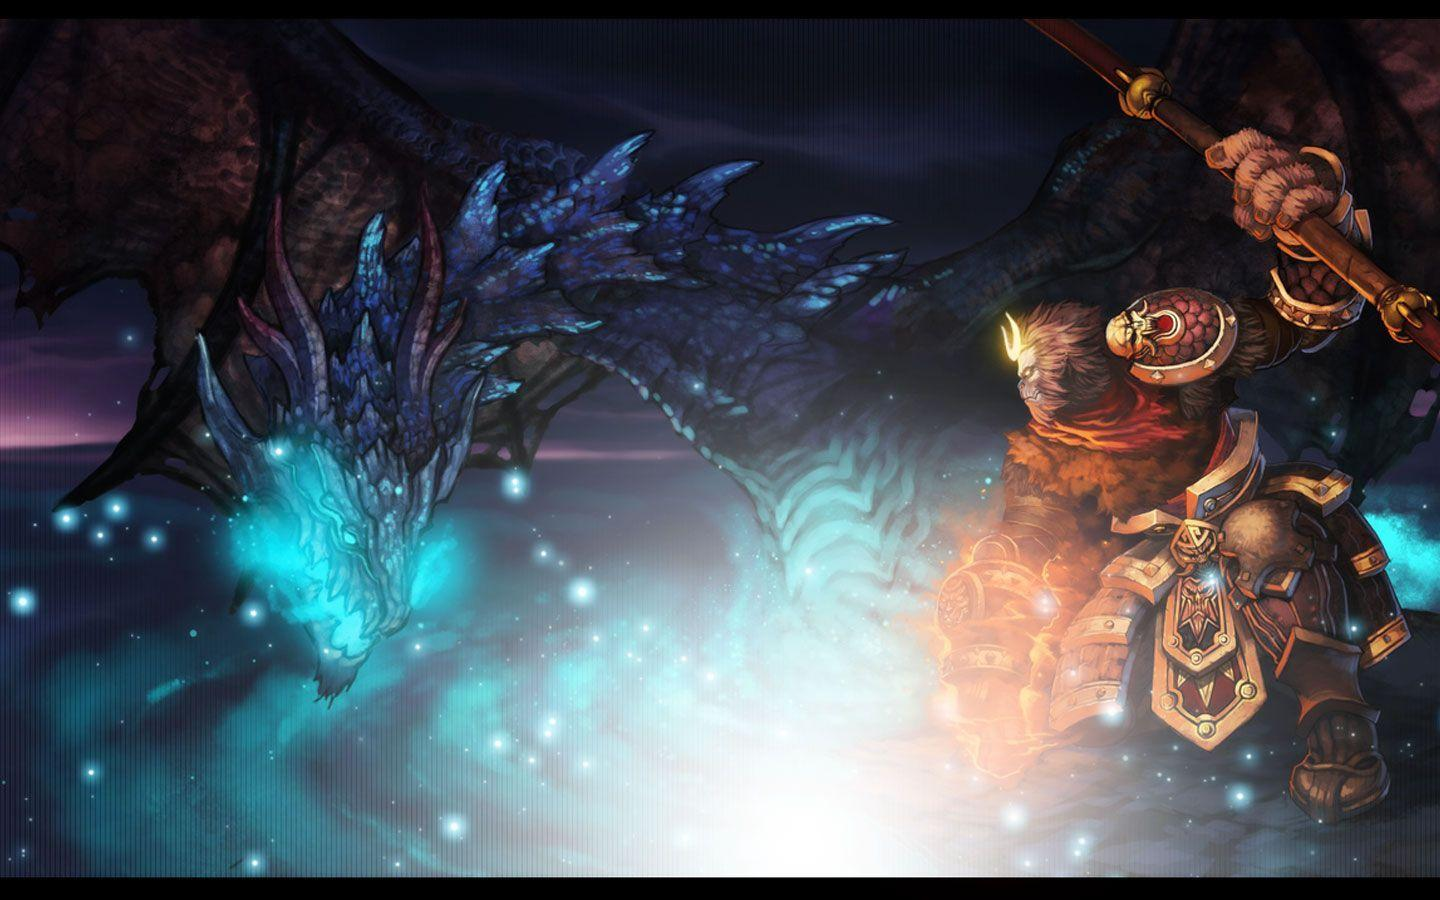 Wallpaper iphone rov - Free Wallpapers Wukong The Monkey King Wallpaper